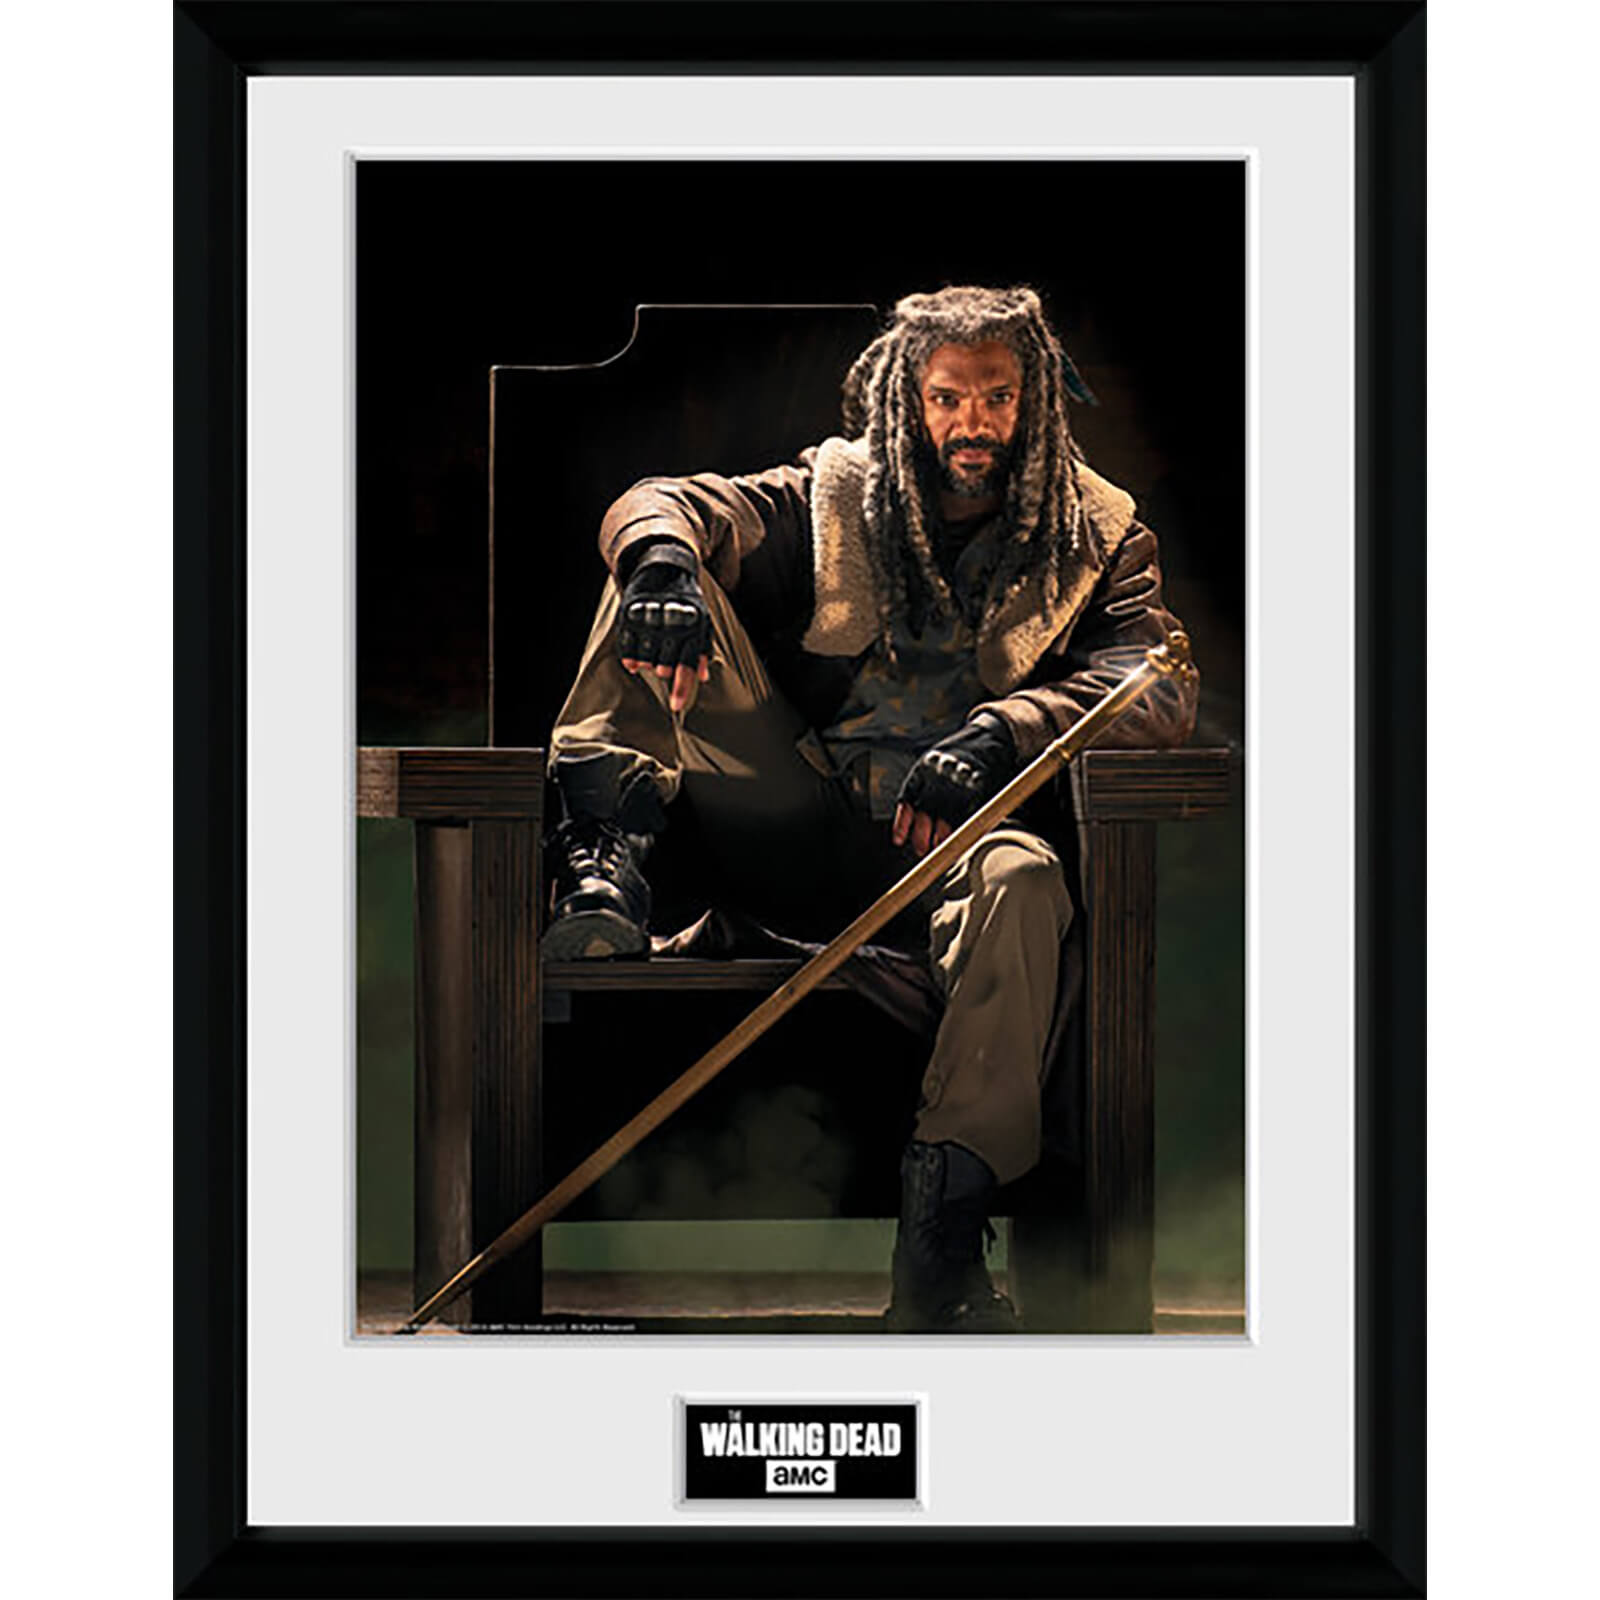 The Walking Dead Ezekial 16 X 12 Inches Framed Photograph